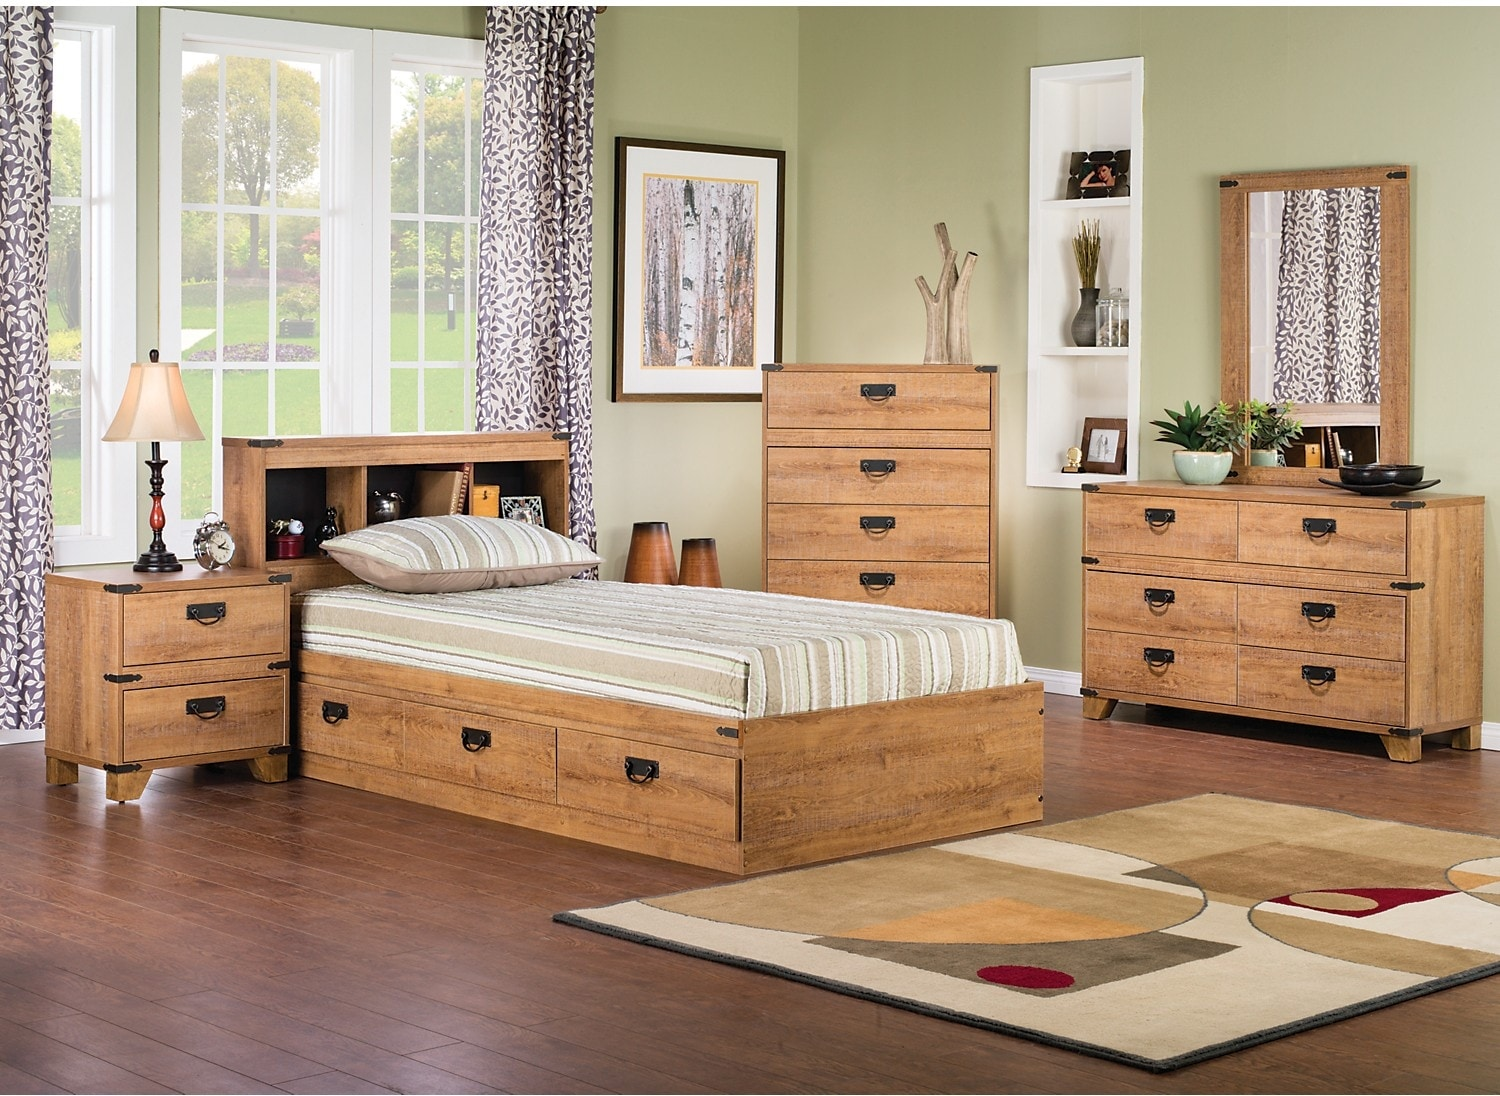 Driftwood 7-Piece Mates Bedroom Package